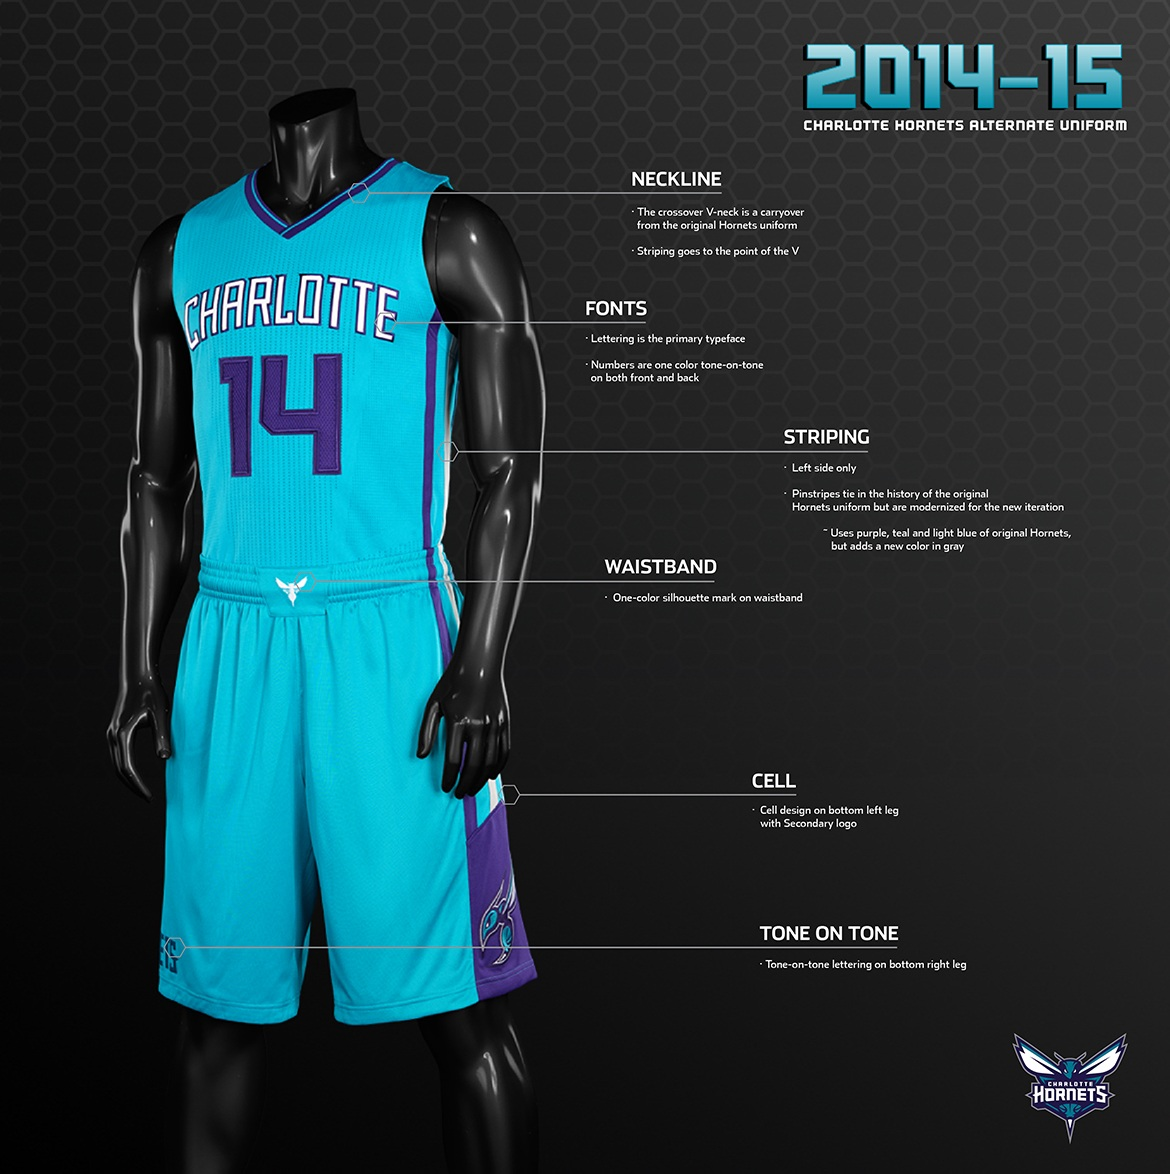 outlet store sale fe42d 8d0a4 NBA: Charlotte Hornets unveil 3 new uniforms | Dilemma X